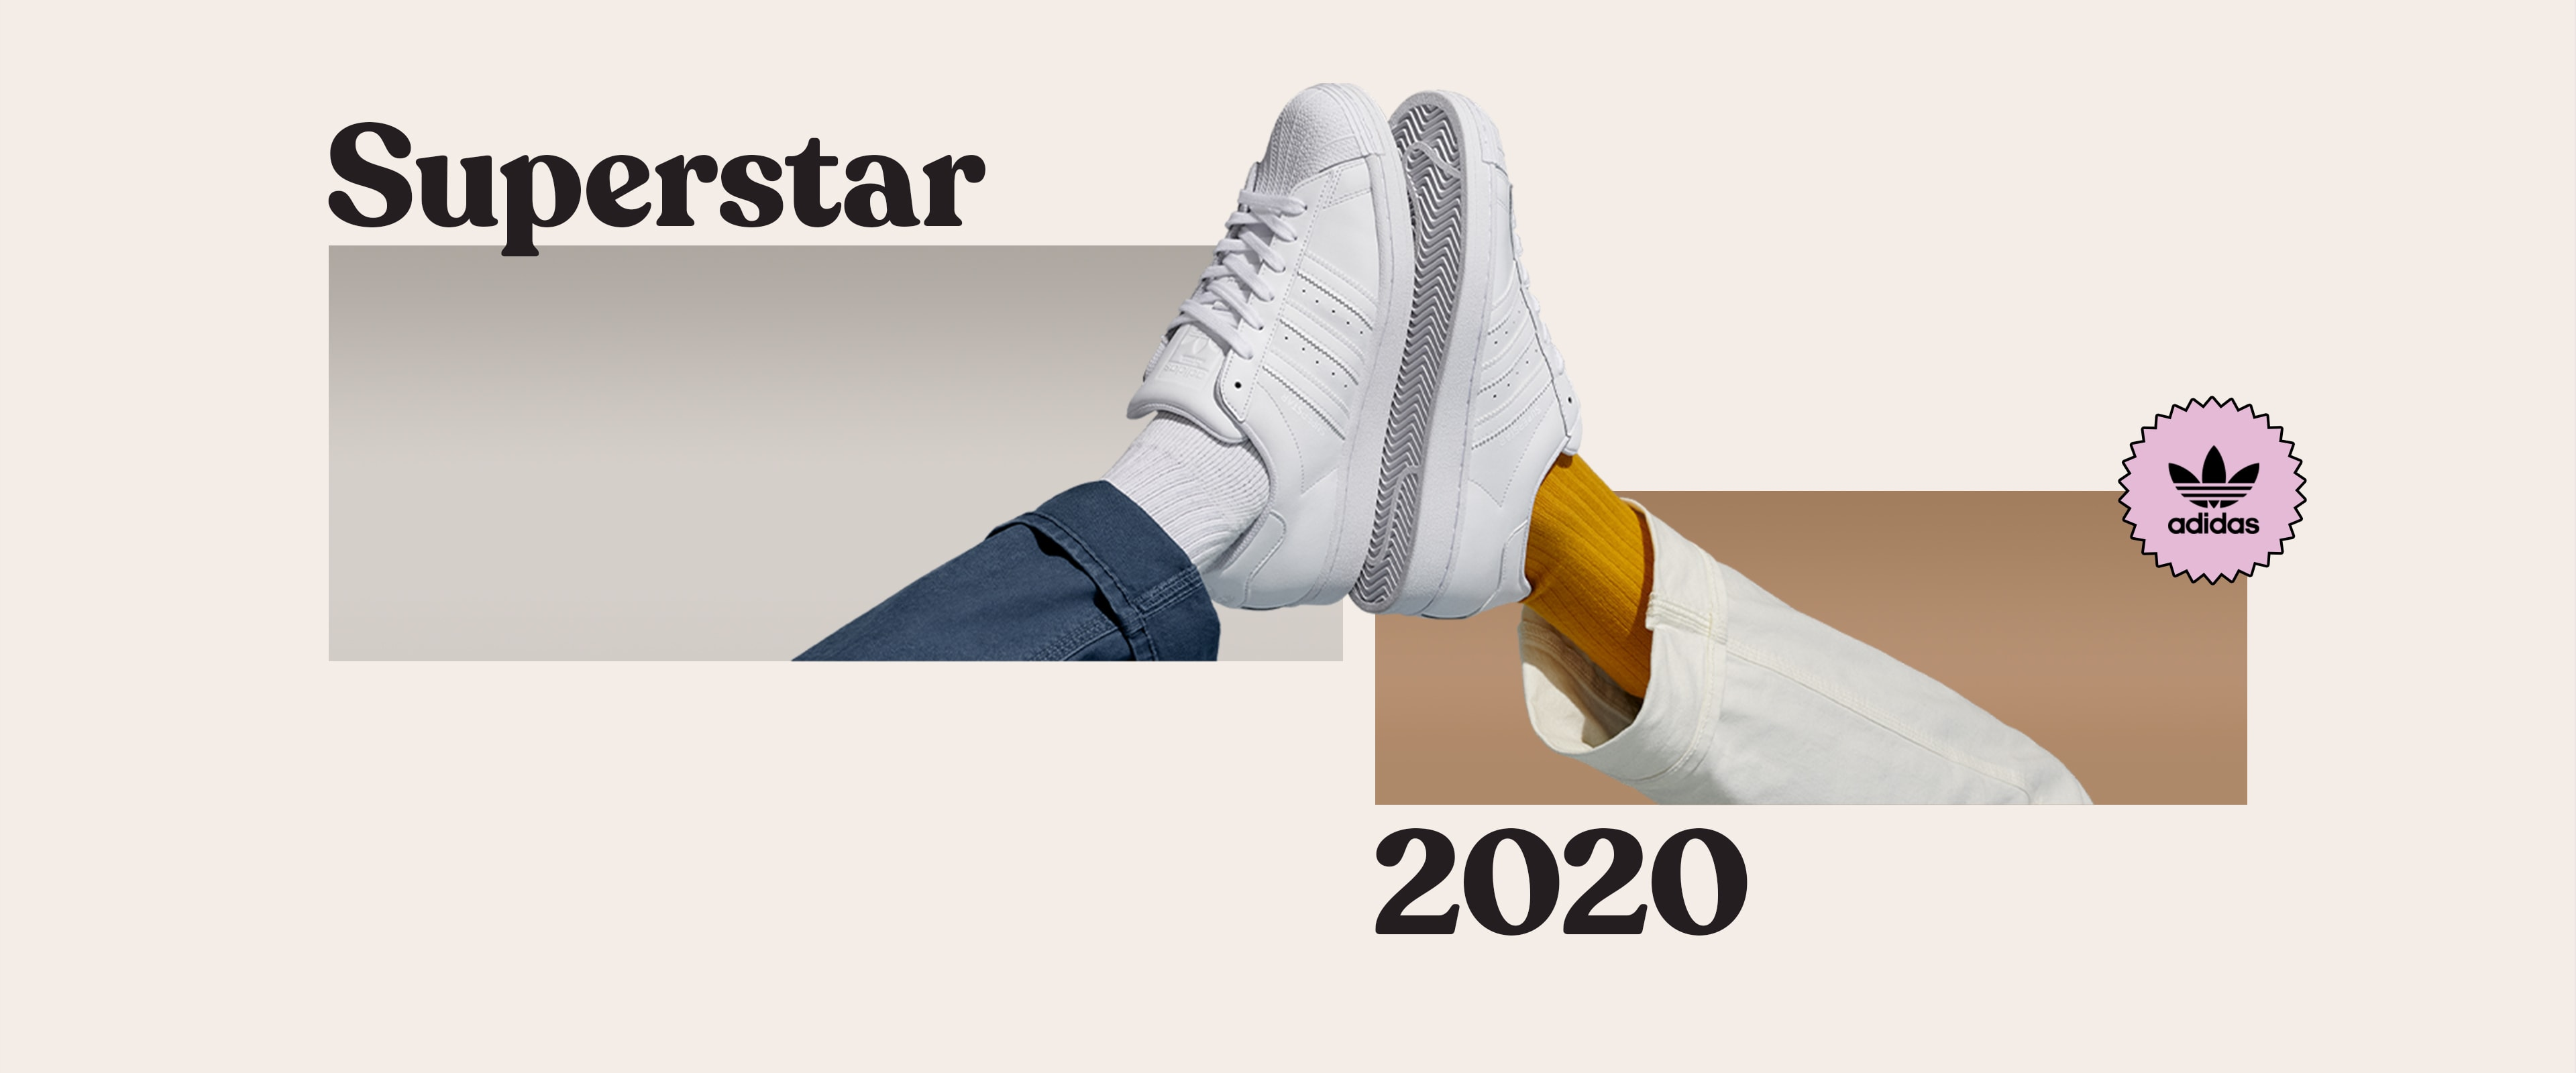 Adidas historie Andet 2020